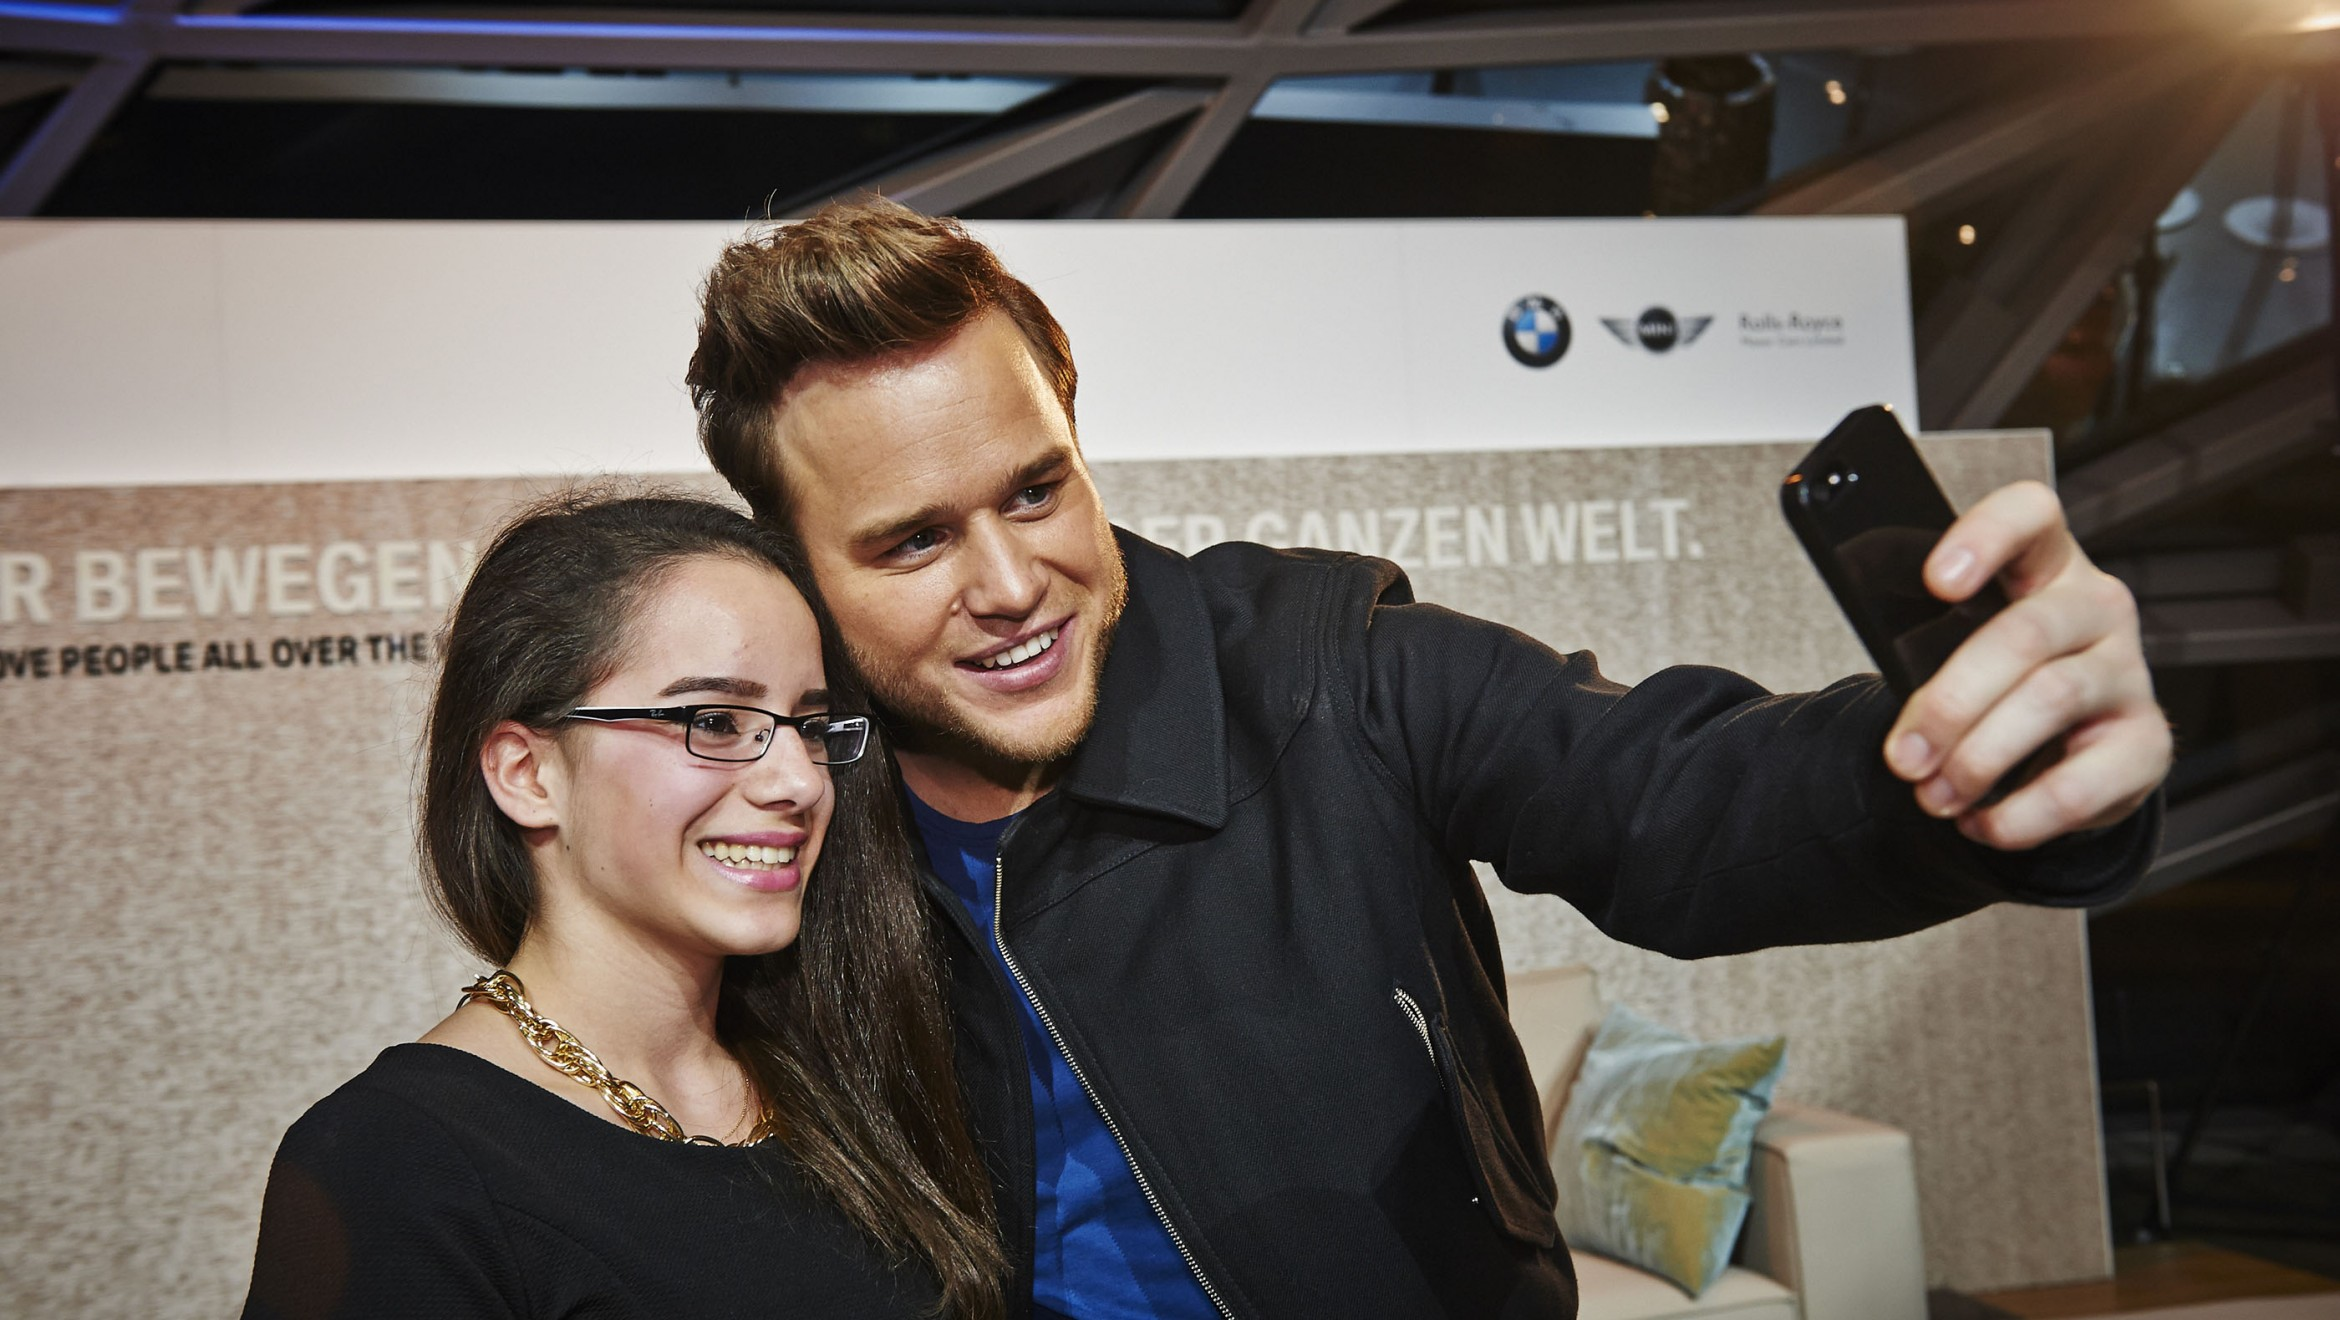 MEET & GREET mit OLLY MURS